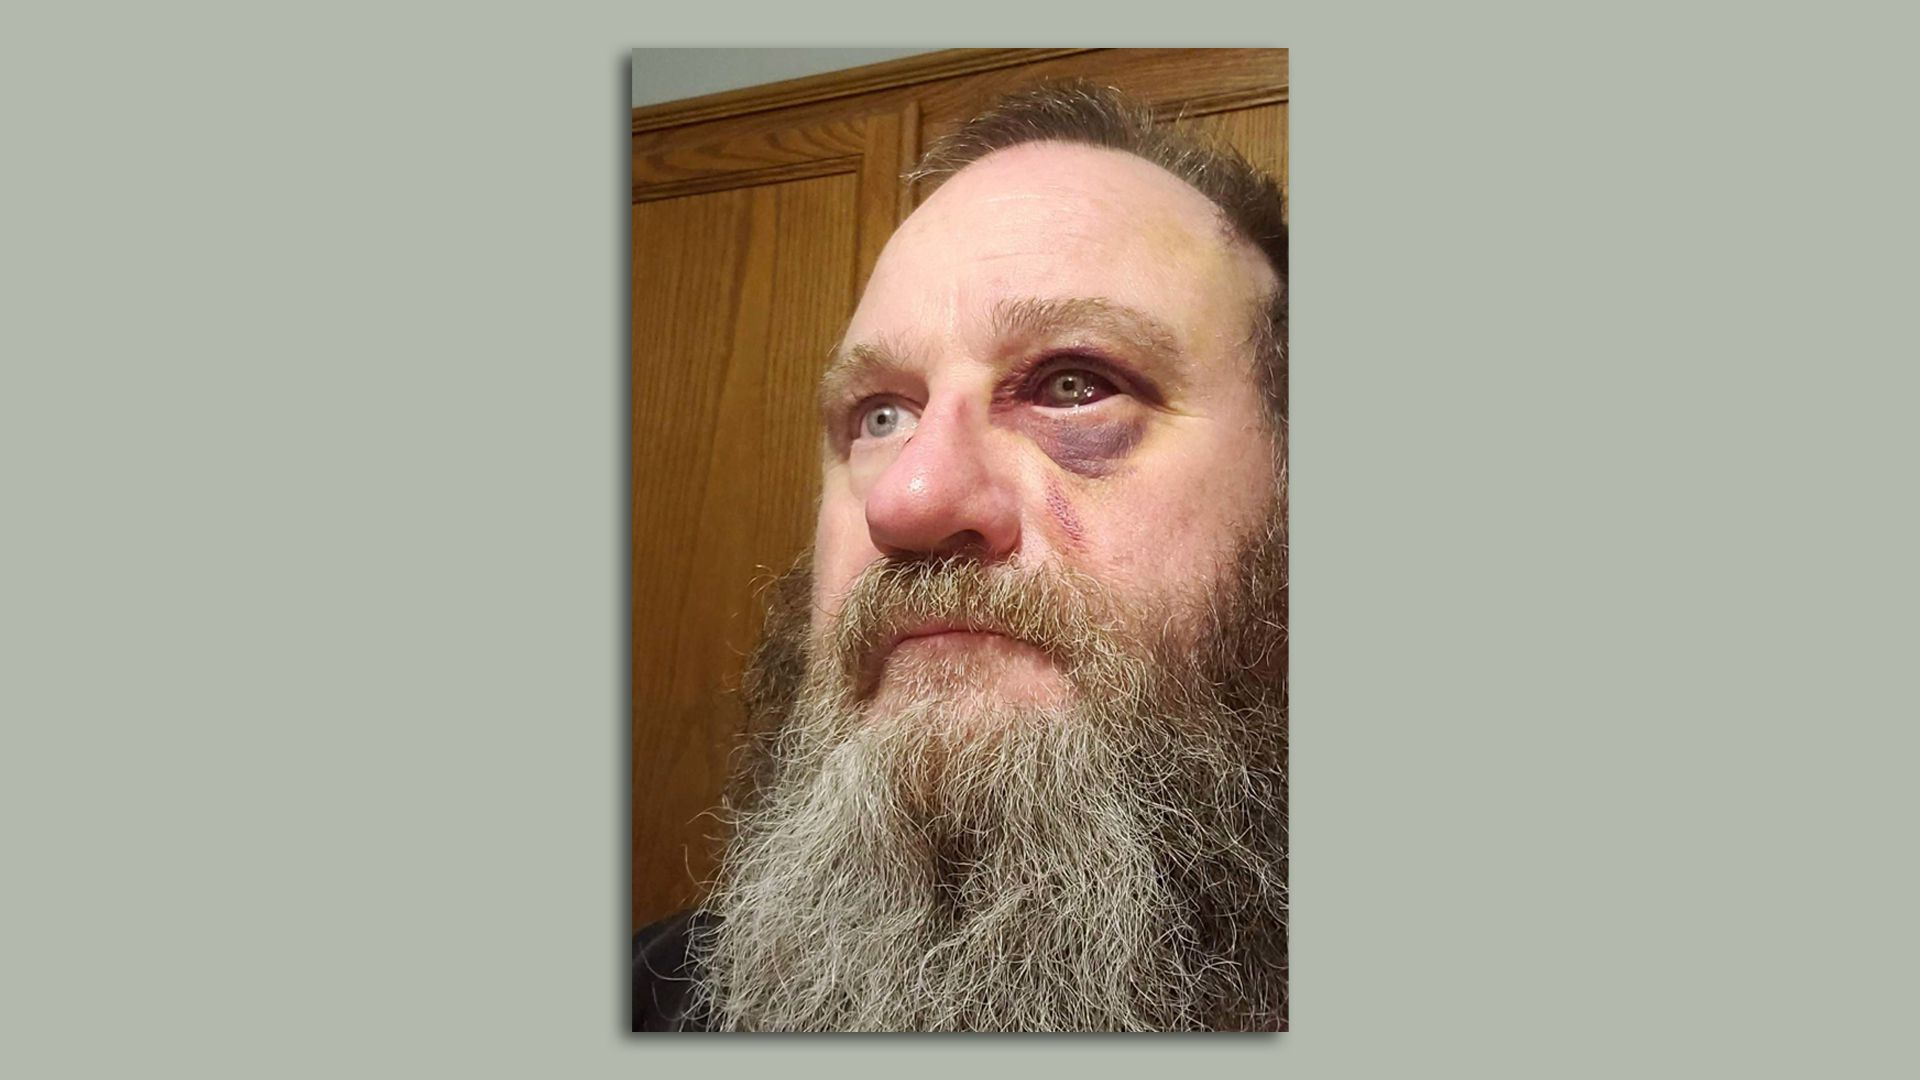 Mark Dinning was injured in a fight over a COVID-19 face mask. Dinning's attacker faces a mandatory 10 year prison sentence next month. Photo: Polk County District Court